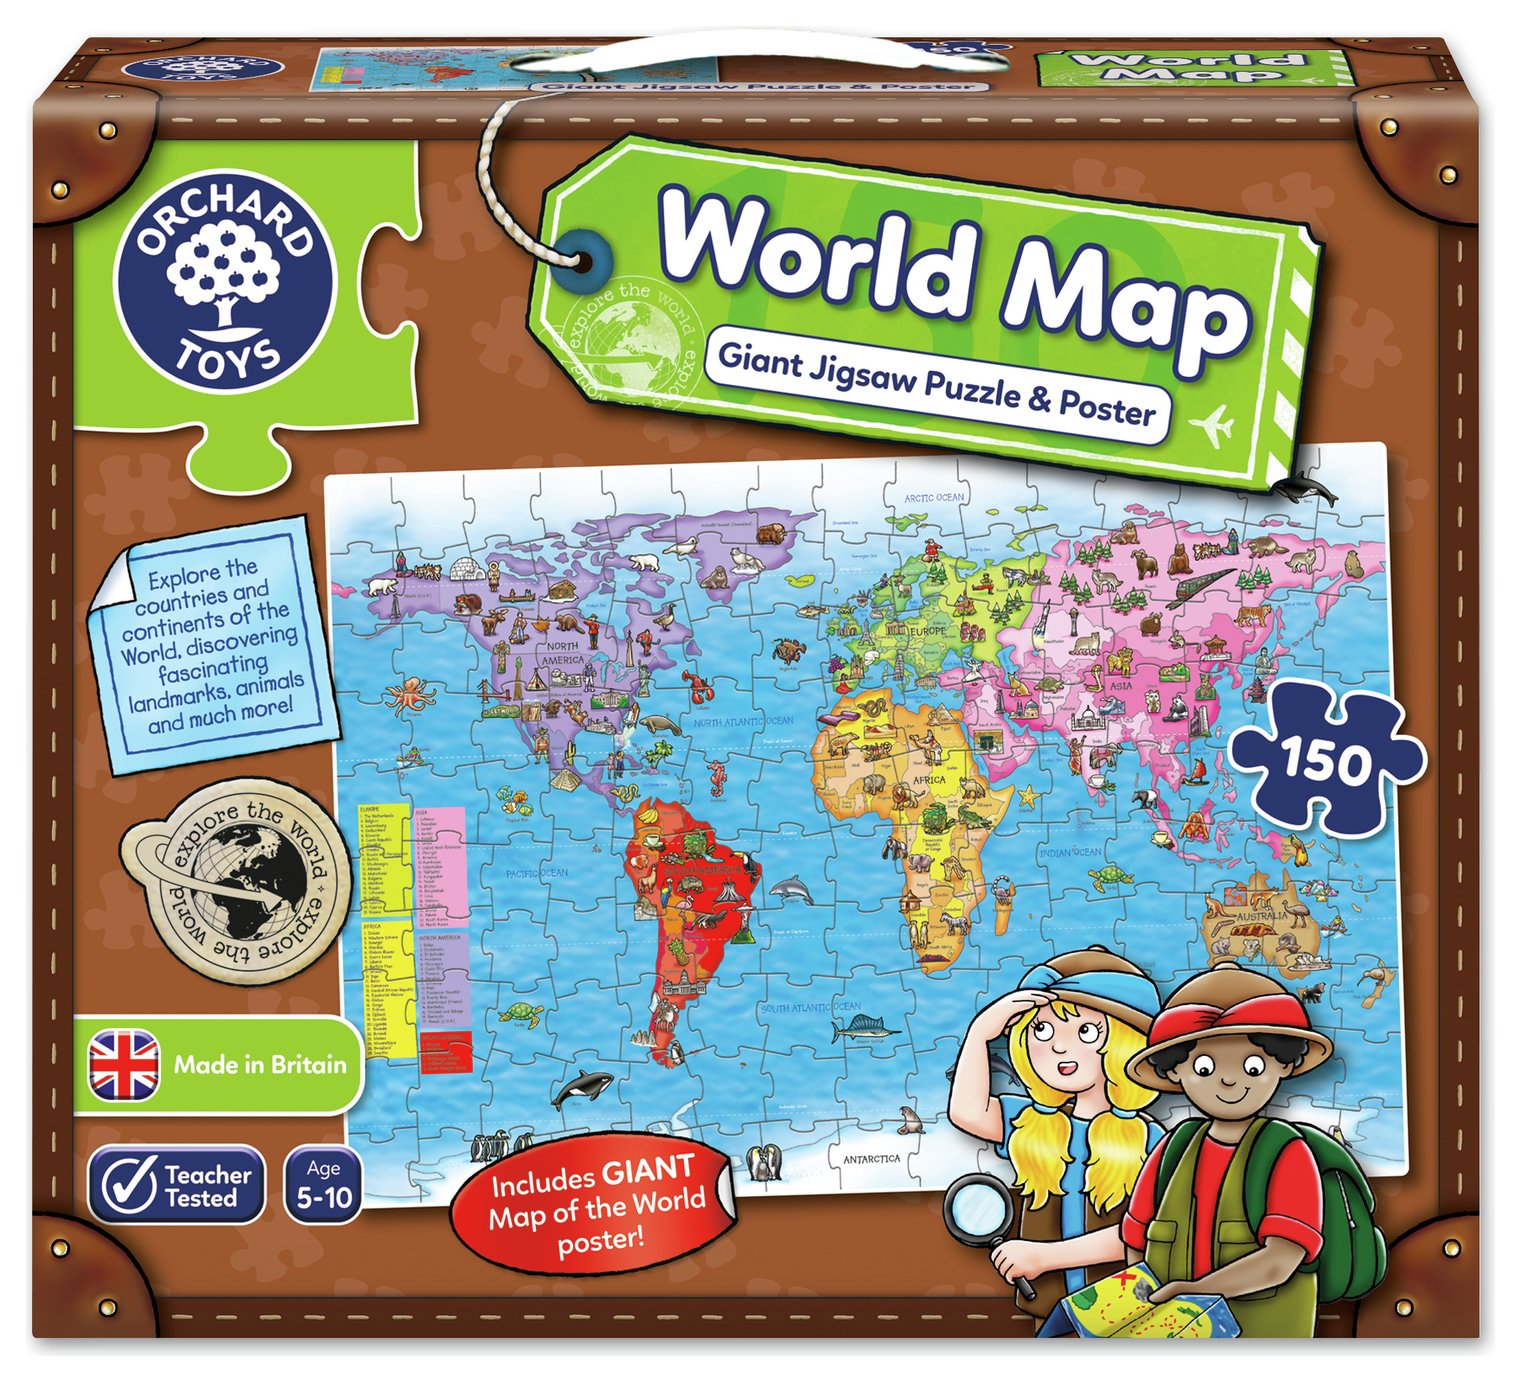 Orchard Toys World Map Puzzle and Poster.